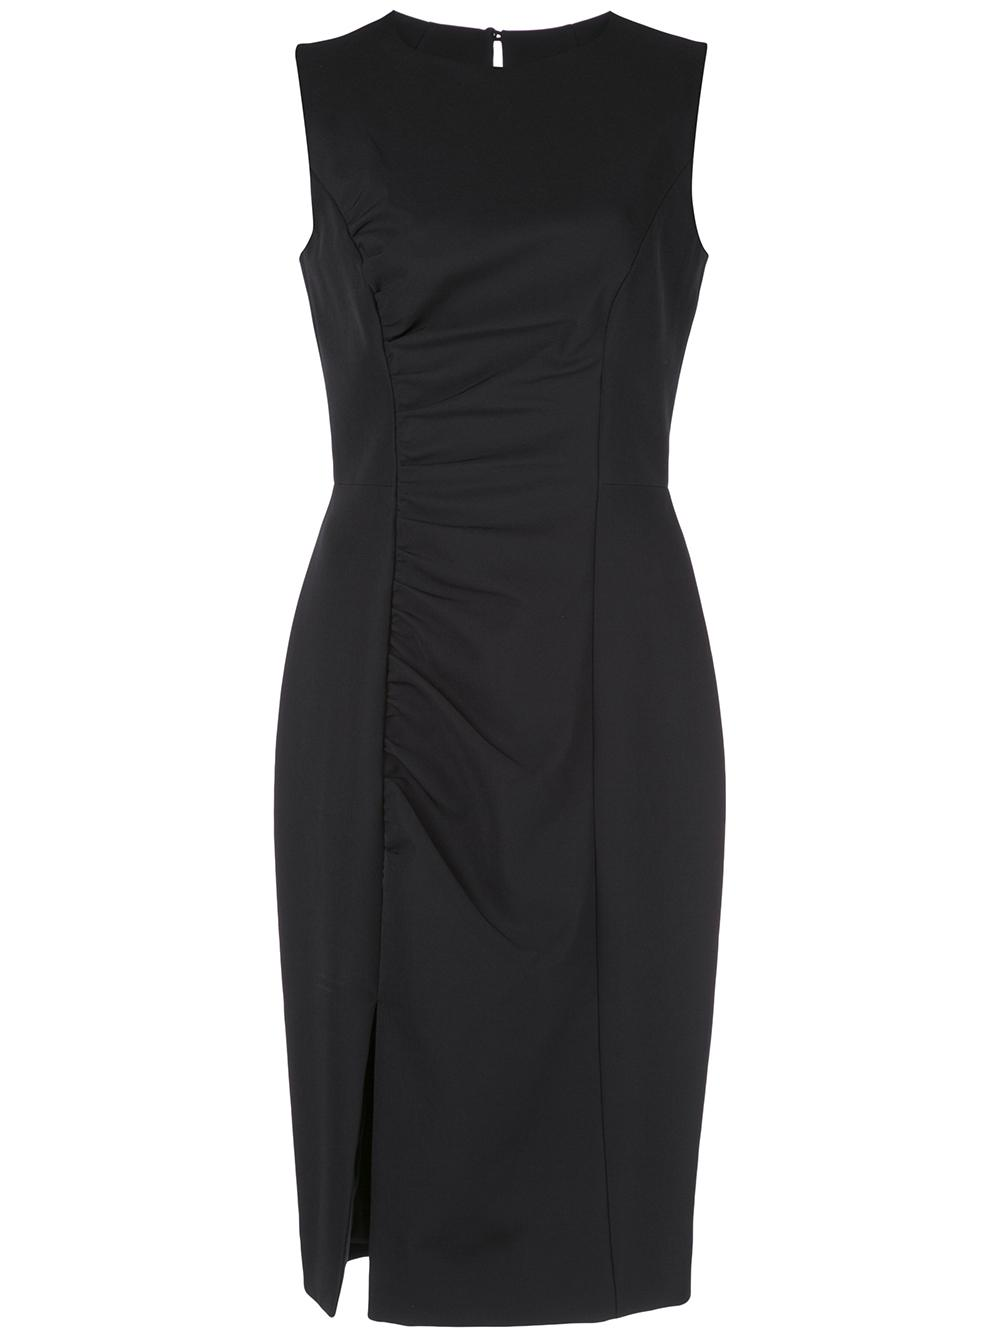 Hera Ruched Sheath Dress